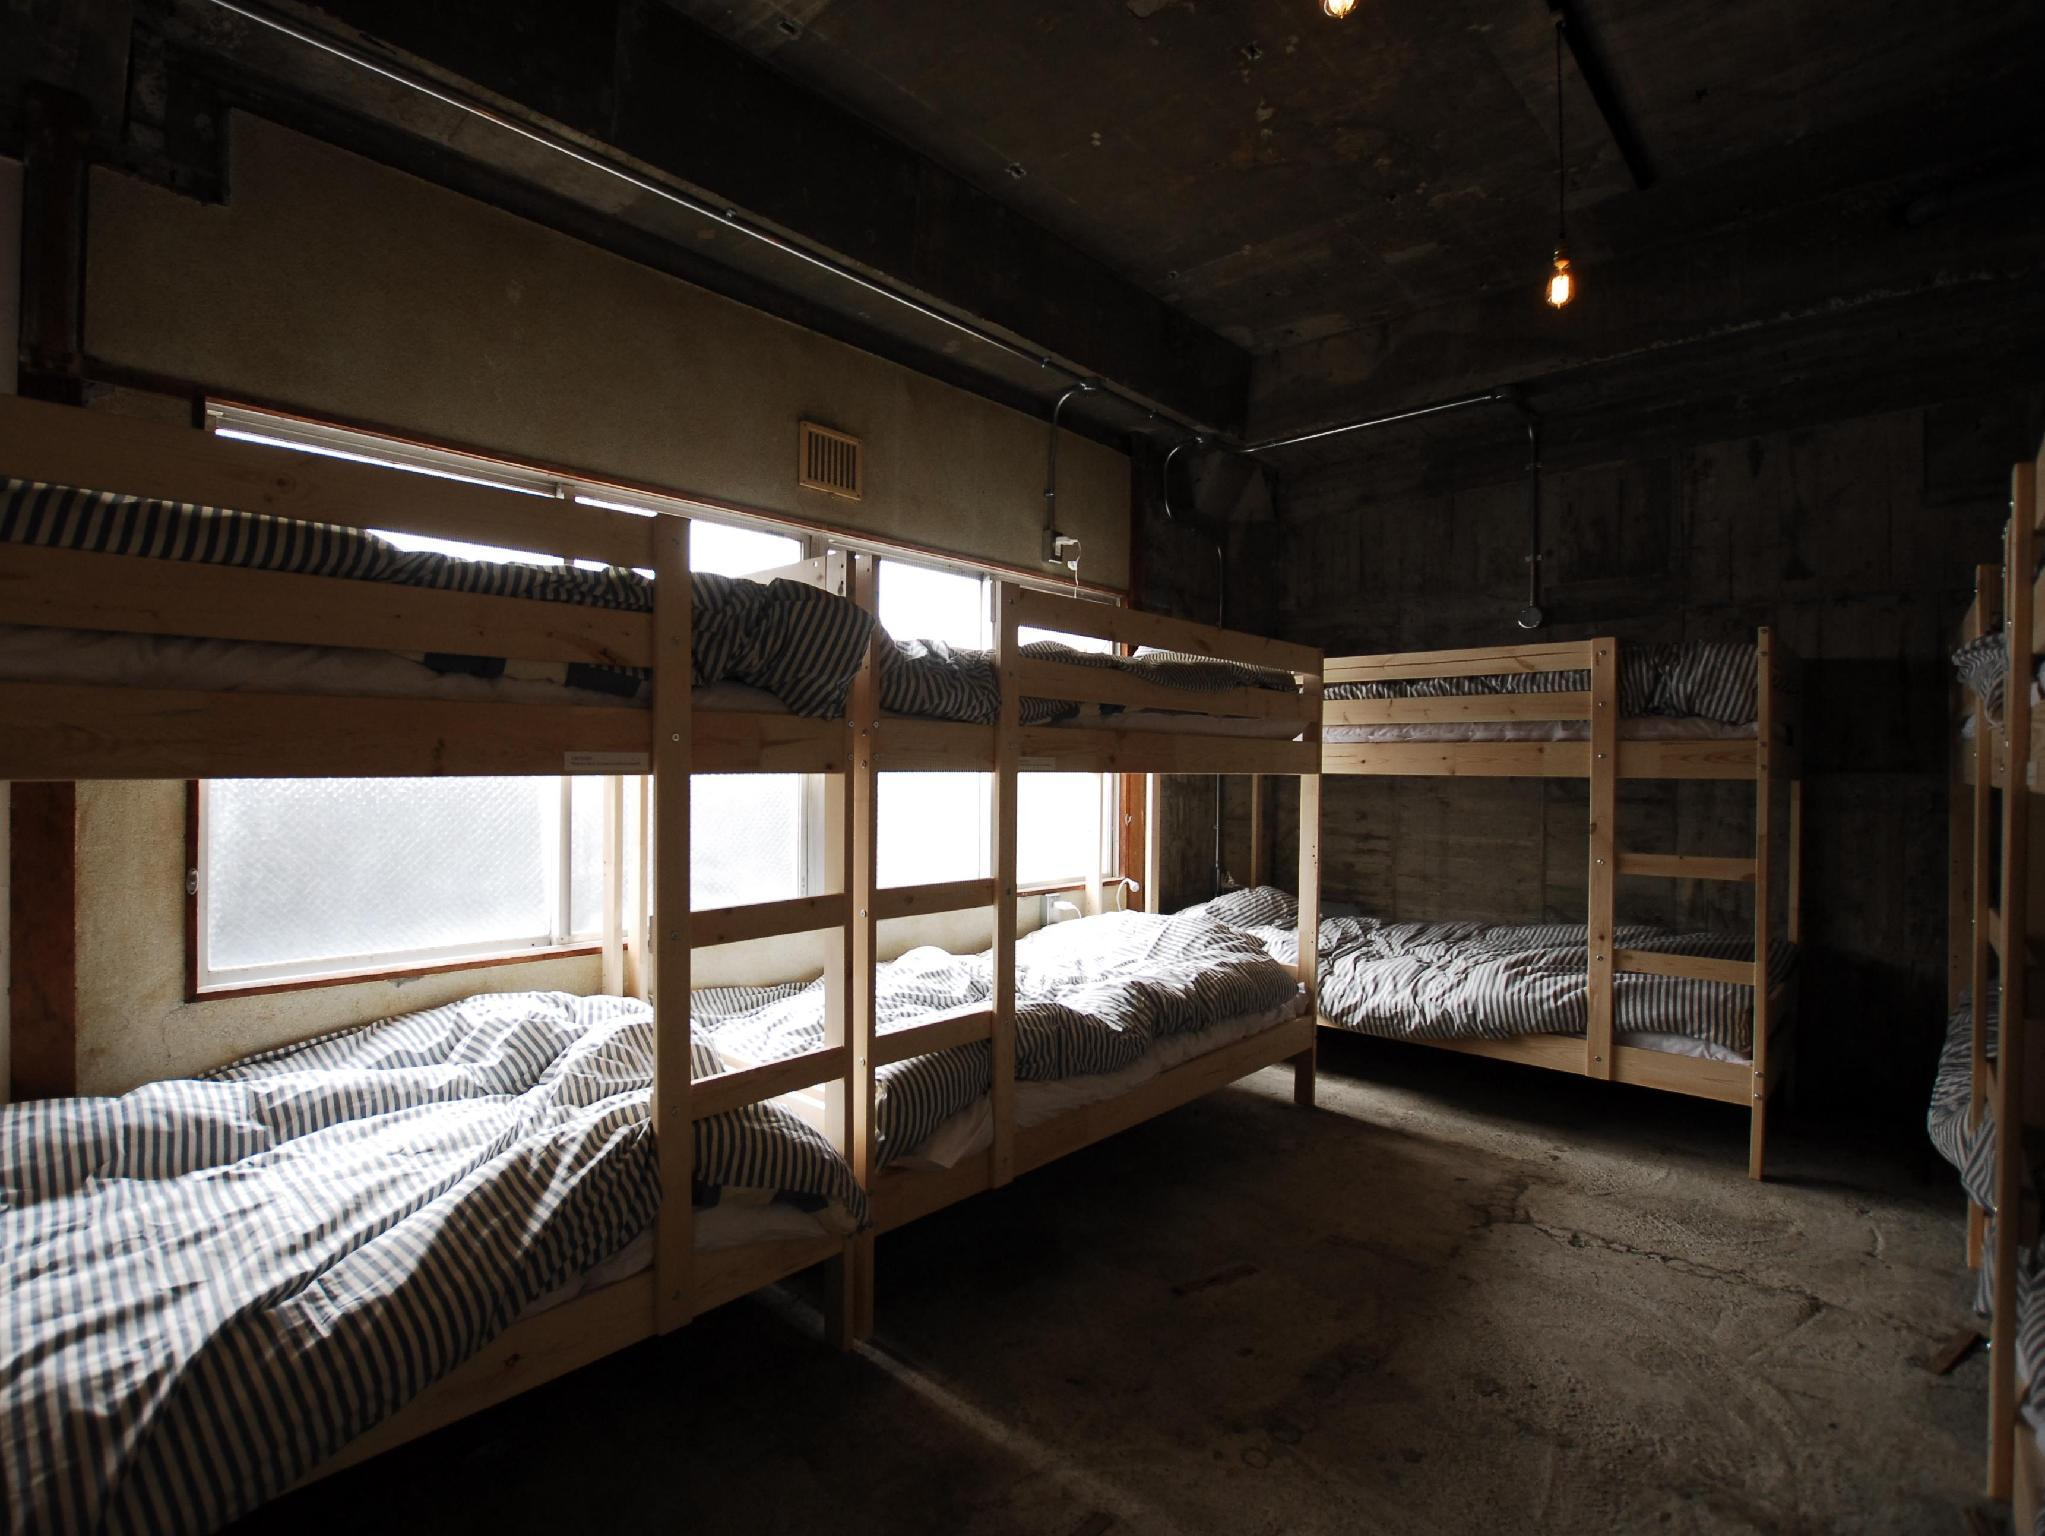 Køjeseng i Sovesal - Kun kvinder (Bunk Bed in Female Dormitory Room)